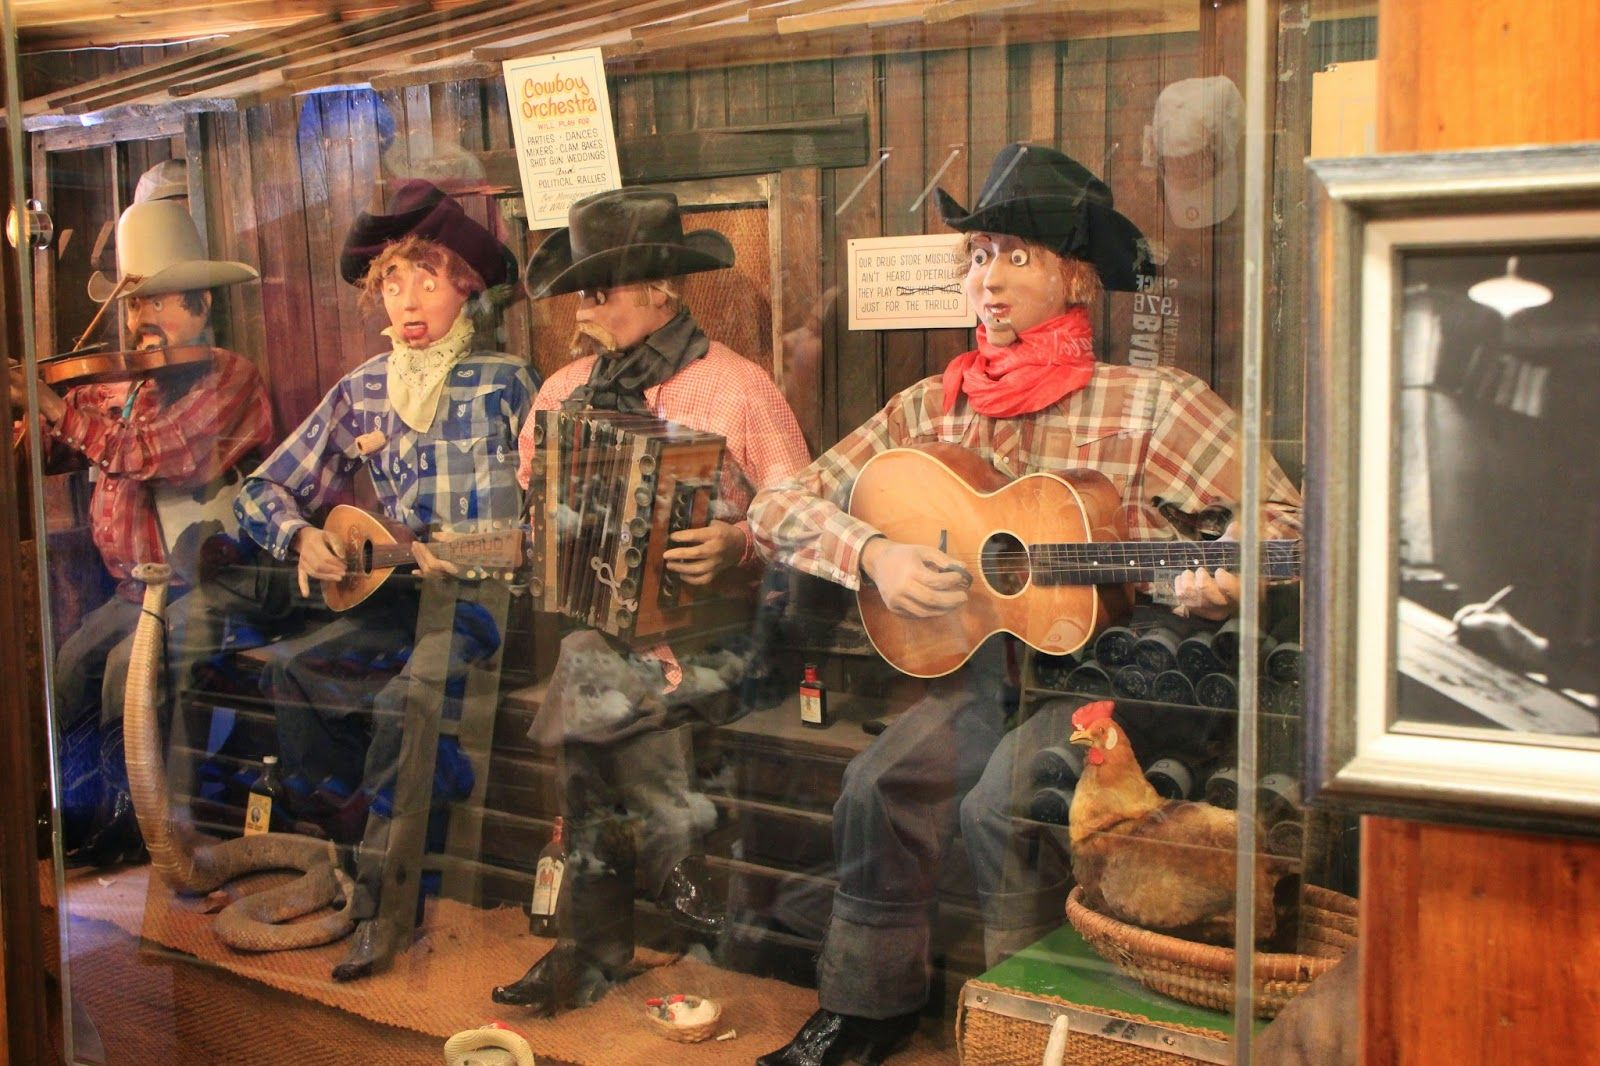 wall drug 2014 author tour part 10 with images on wall drug south dakota id=29194